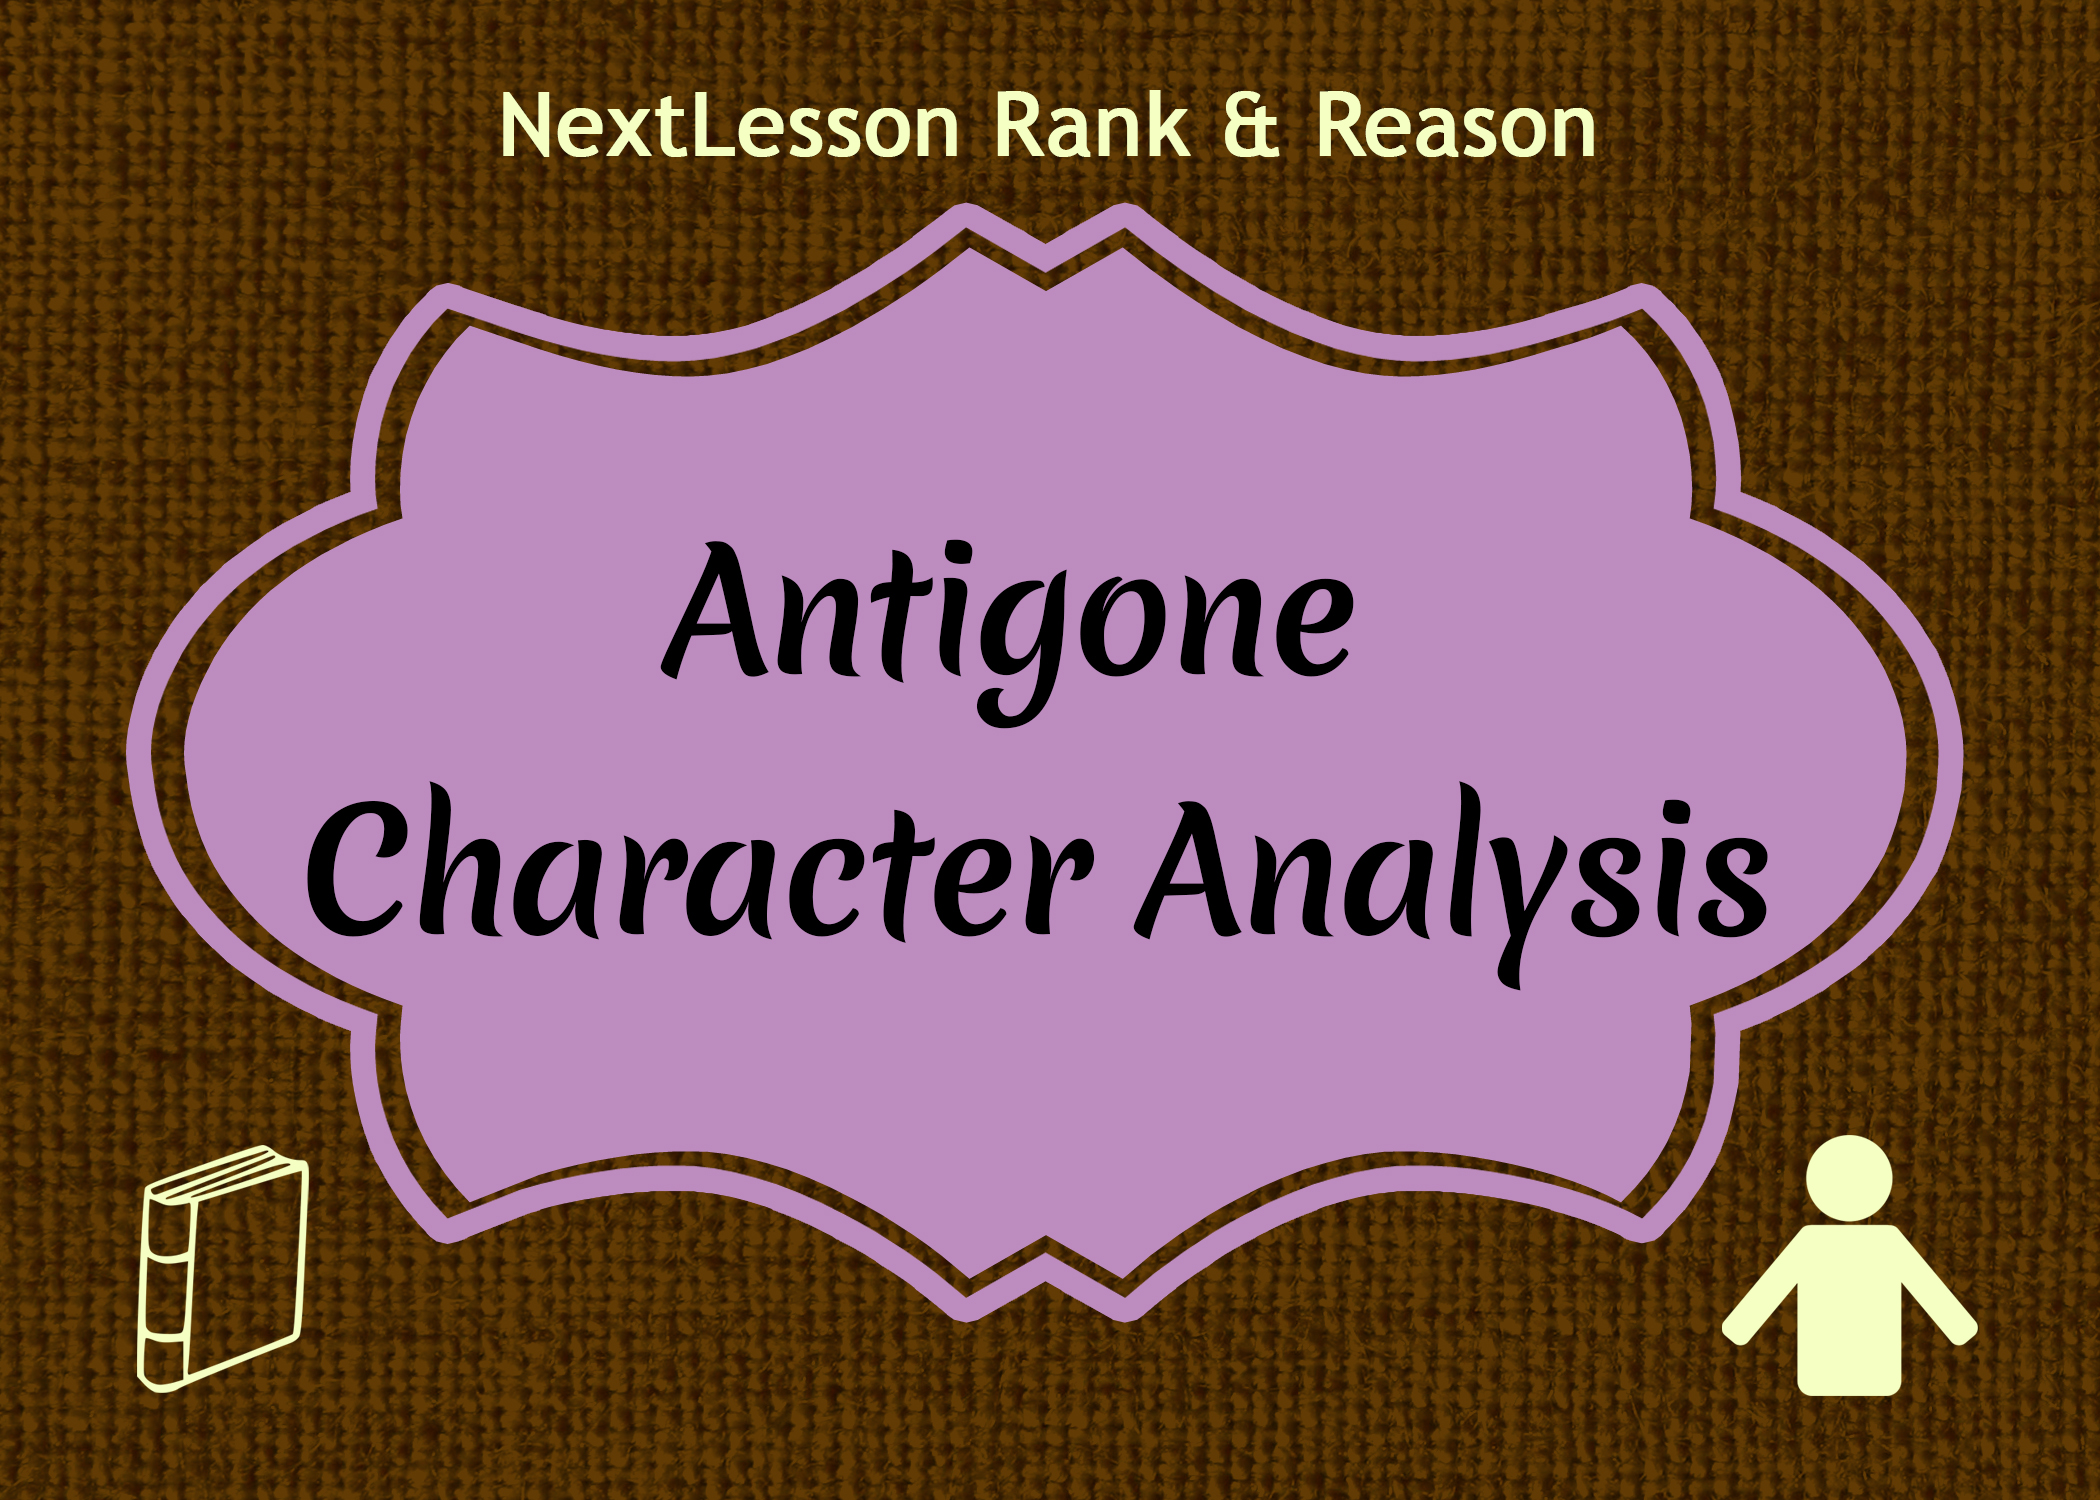 character analysis essay on antigone writefiction581 web fc2 com character analysis essay on antigone